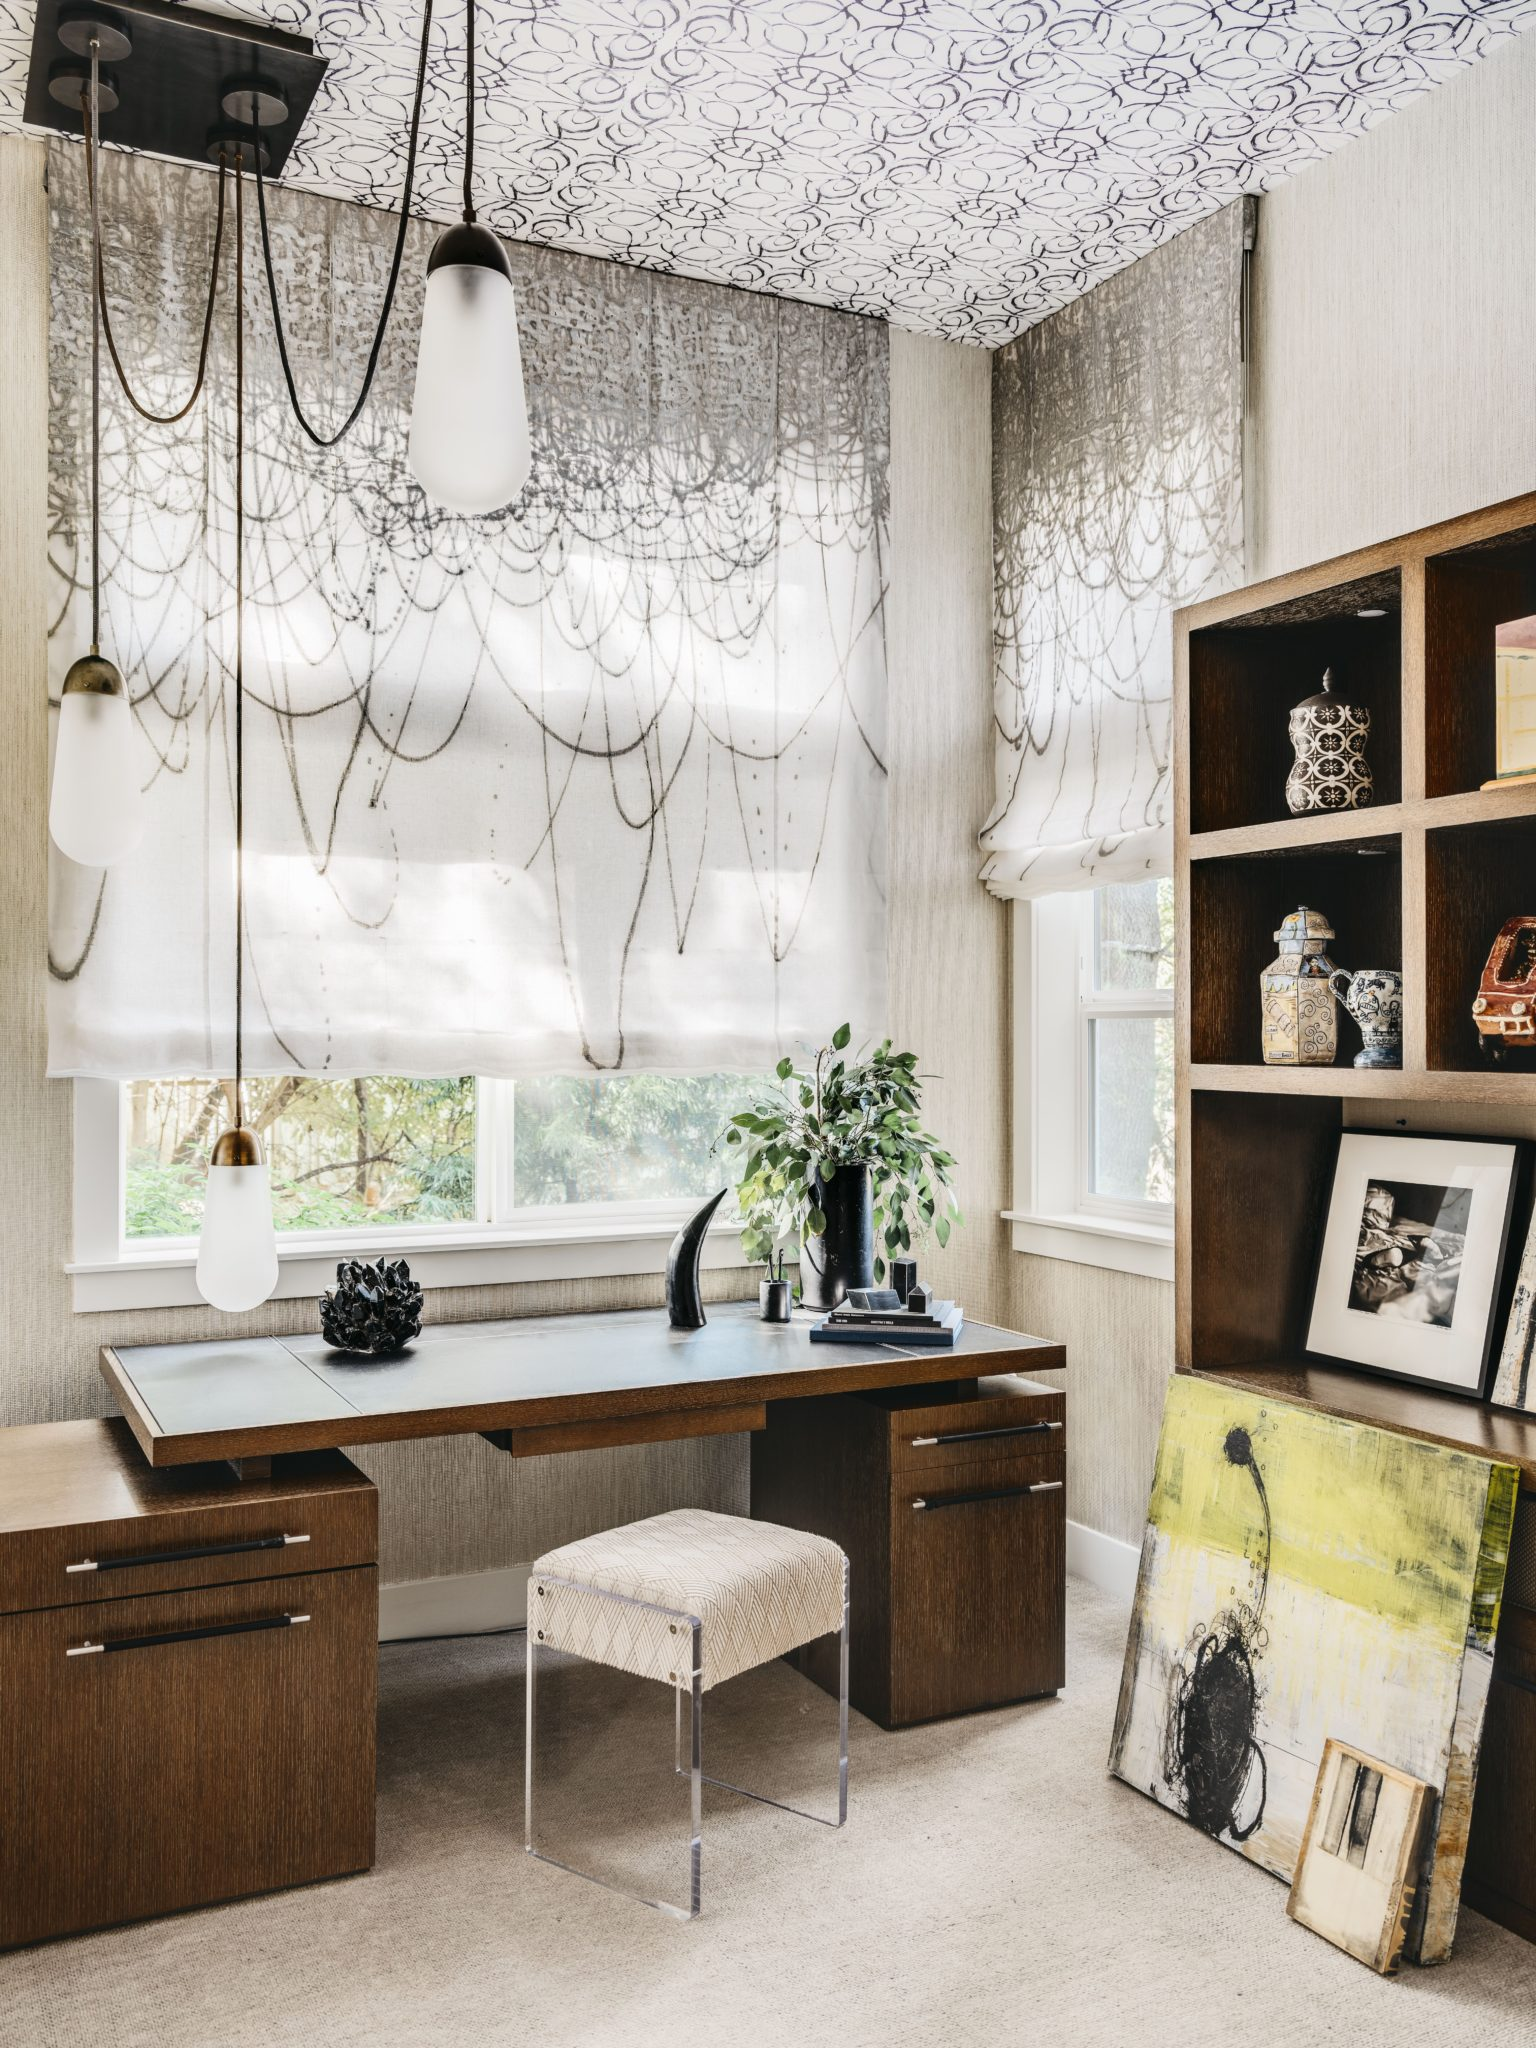 Home office with wallpapered ceiling, graphic shades, and contemporary wood desk by Holly A. Kopman Interior Design